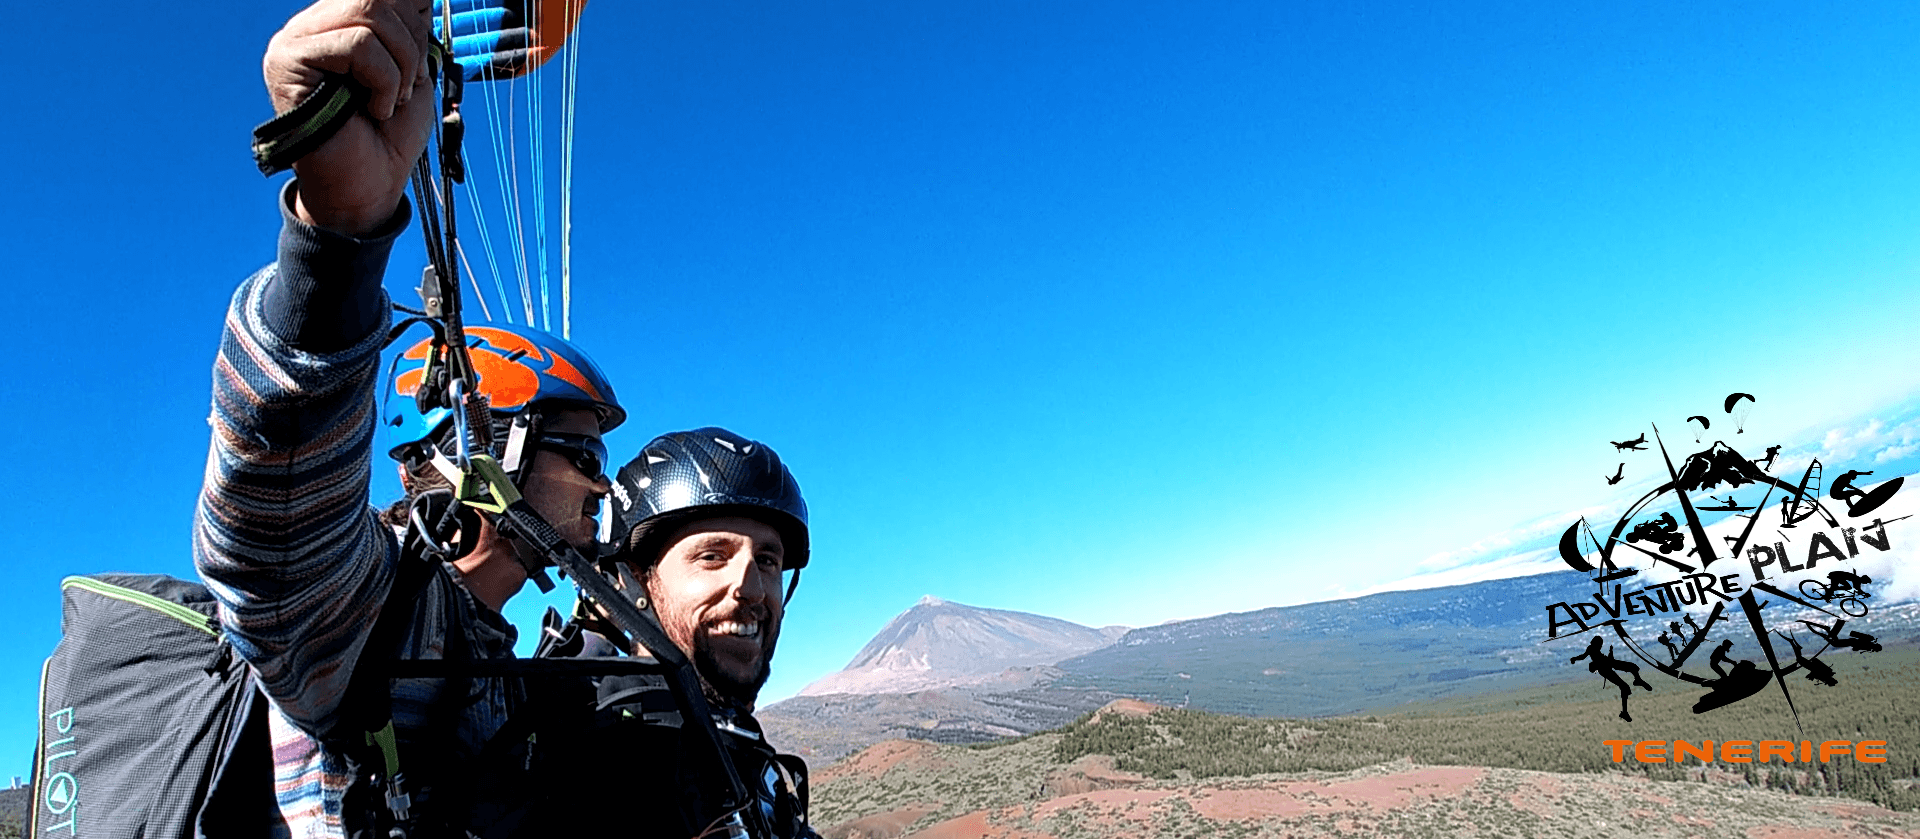 PARAGLIDING TENERIFE - FLY PARAGLIDING TENERIFE - ADVENTURE PLAN TENERIFE PARAGLIDING - ADVENTURE TENERIFE PARAGLIDING _ PARAGLIDING LESSONS TENERIFE - PARAGLIDING ADEJE - PARAGLIDING TEIDE - PARAPENDIO TENERIFE -PARAPENDIO TANDEM TENERIFE - ACROBATIC PARAGLIDING TENERIFE - PARAPENTE ACROBATICO TENERIFE - AVENTURAS EN TENERIFE   - PARAPENDIO IZAÑA SUNSET, PARAPENDIO Tenerife EL TEIDE SUNSET, HIKE AND FLY EL TEIDE BY NIGHT, HIKE & FLY EL TEIDE